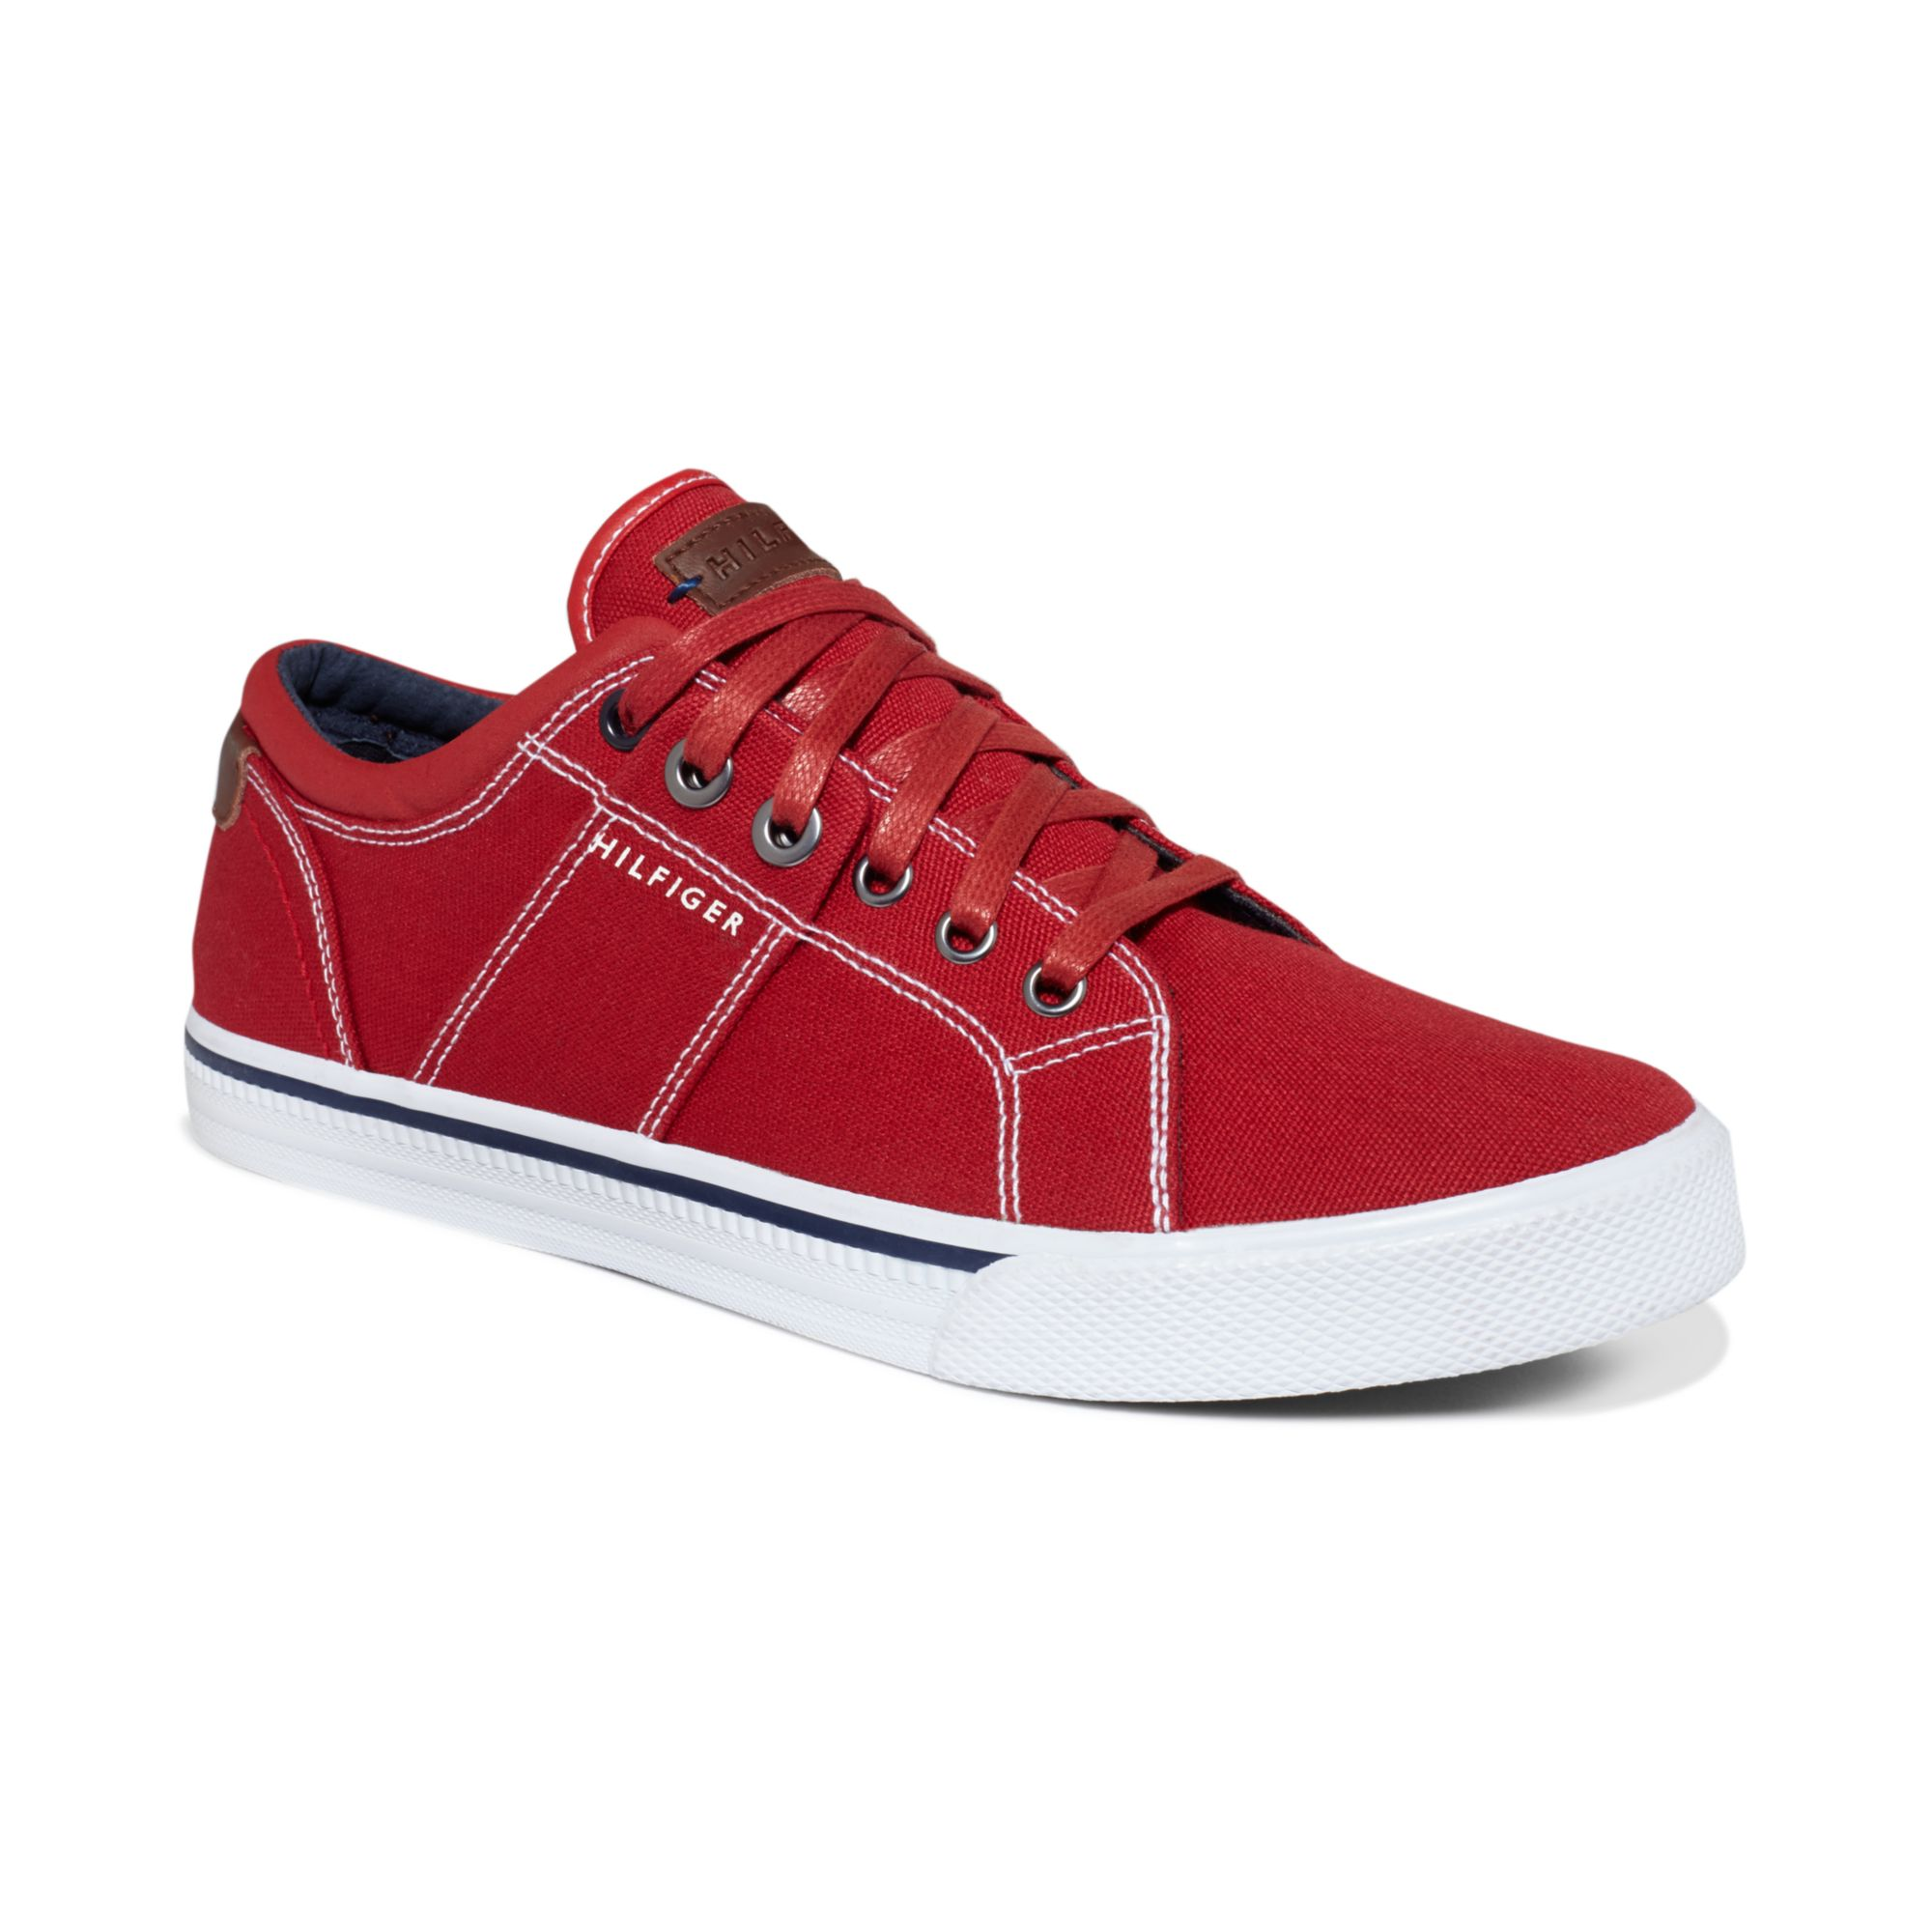 tommy hilfiger robbie2 sneakers in red for men lyst. Black Bedroom Furniture Sets. Home Design Ideas